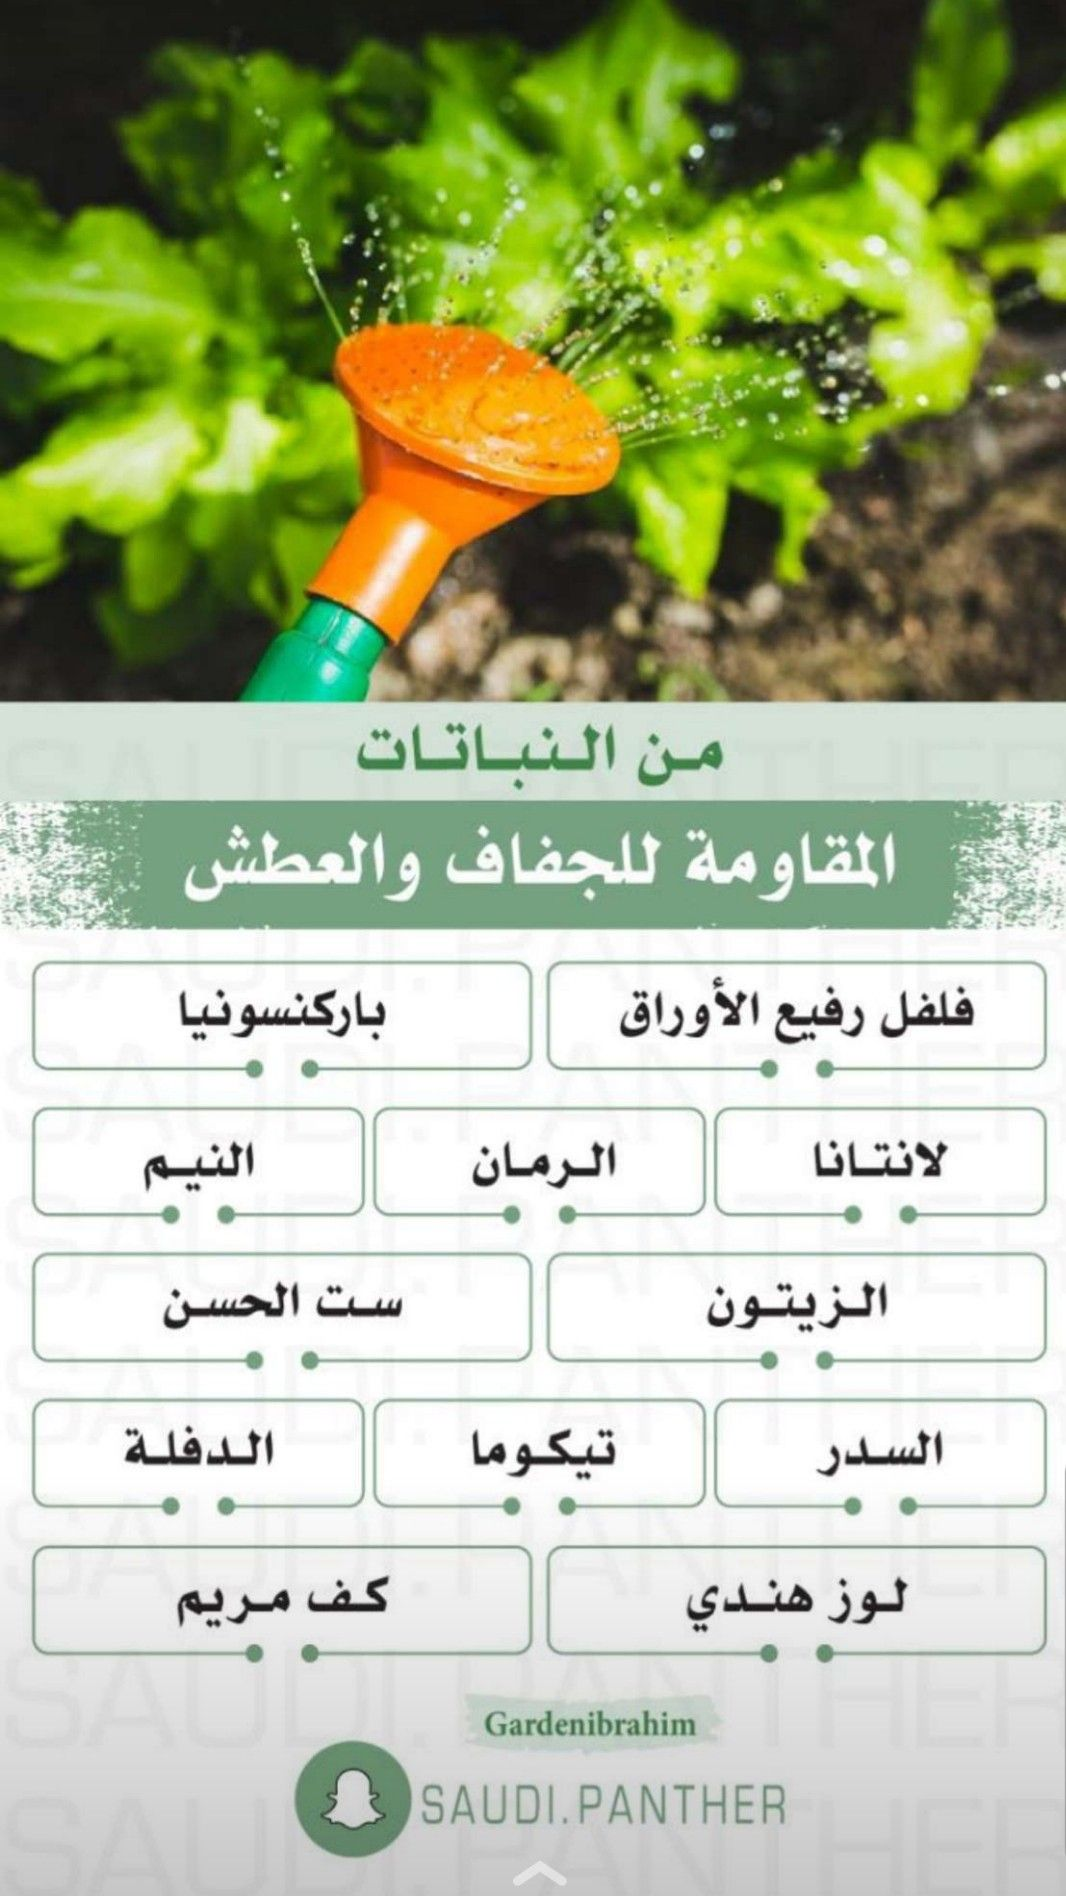 Pin By Hnoreen On Home Managment إدارة المنزل Garden Care Plants House Plants